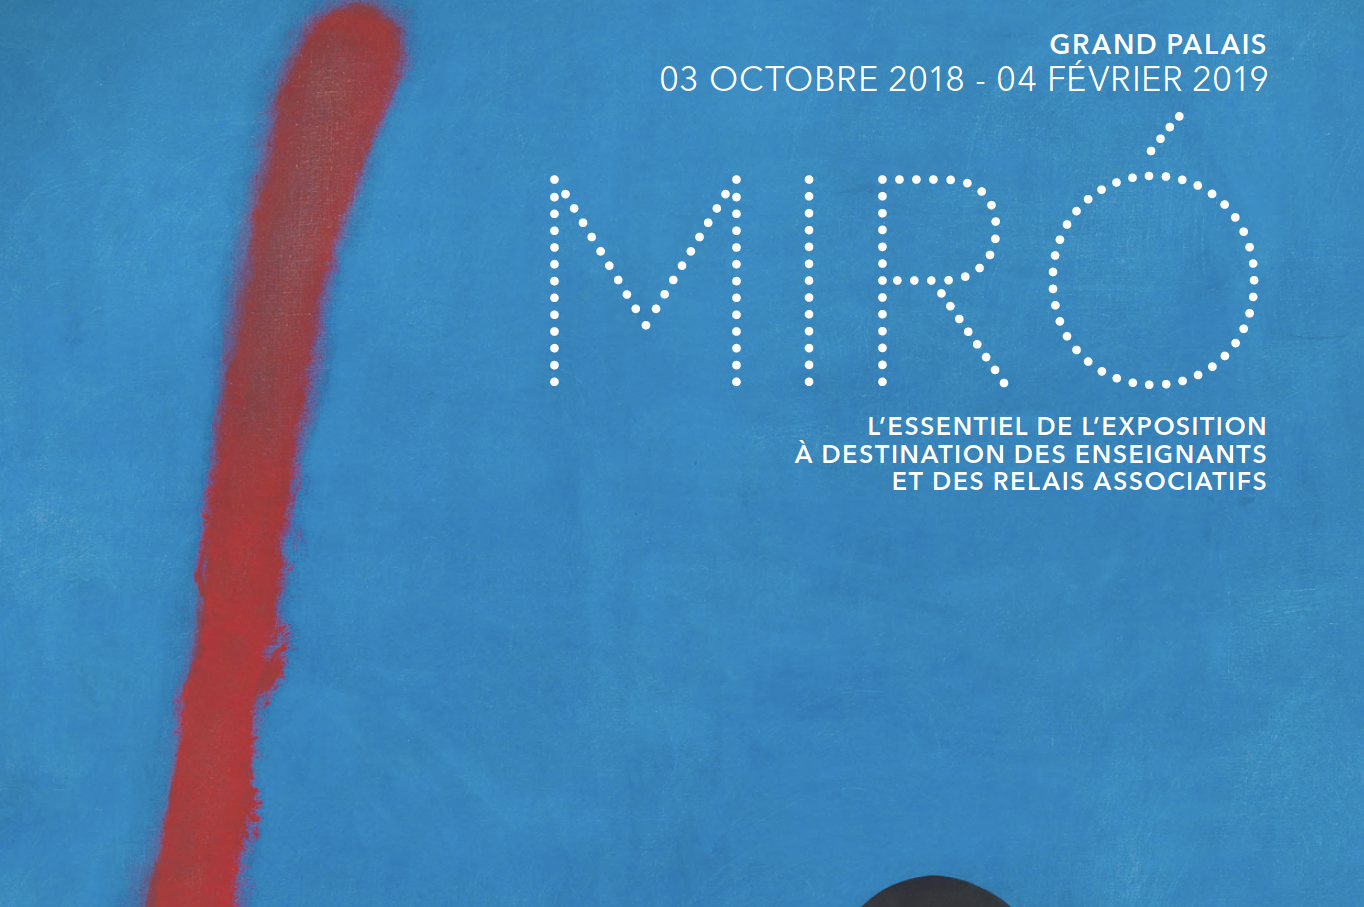 Abertis, through Sanef, sponsors the great exhibition of Miro in Paris' Grand Palais